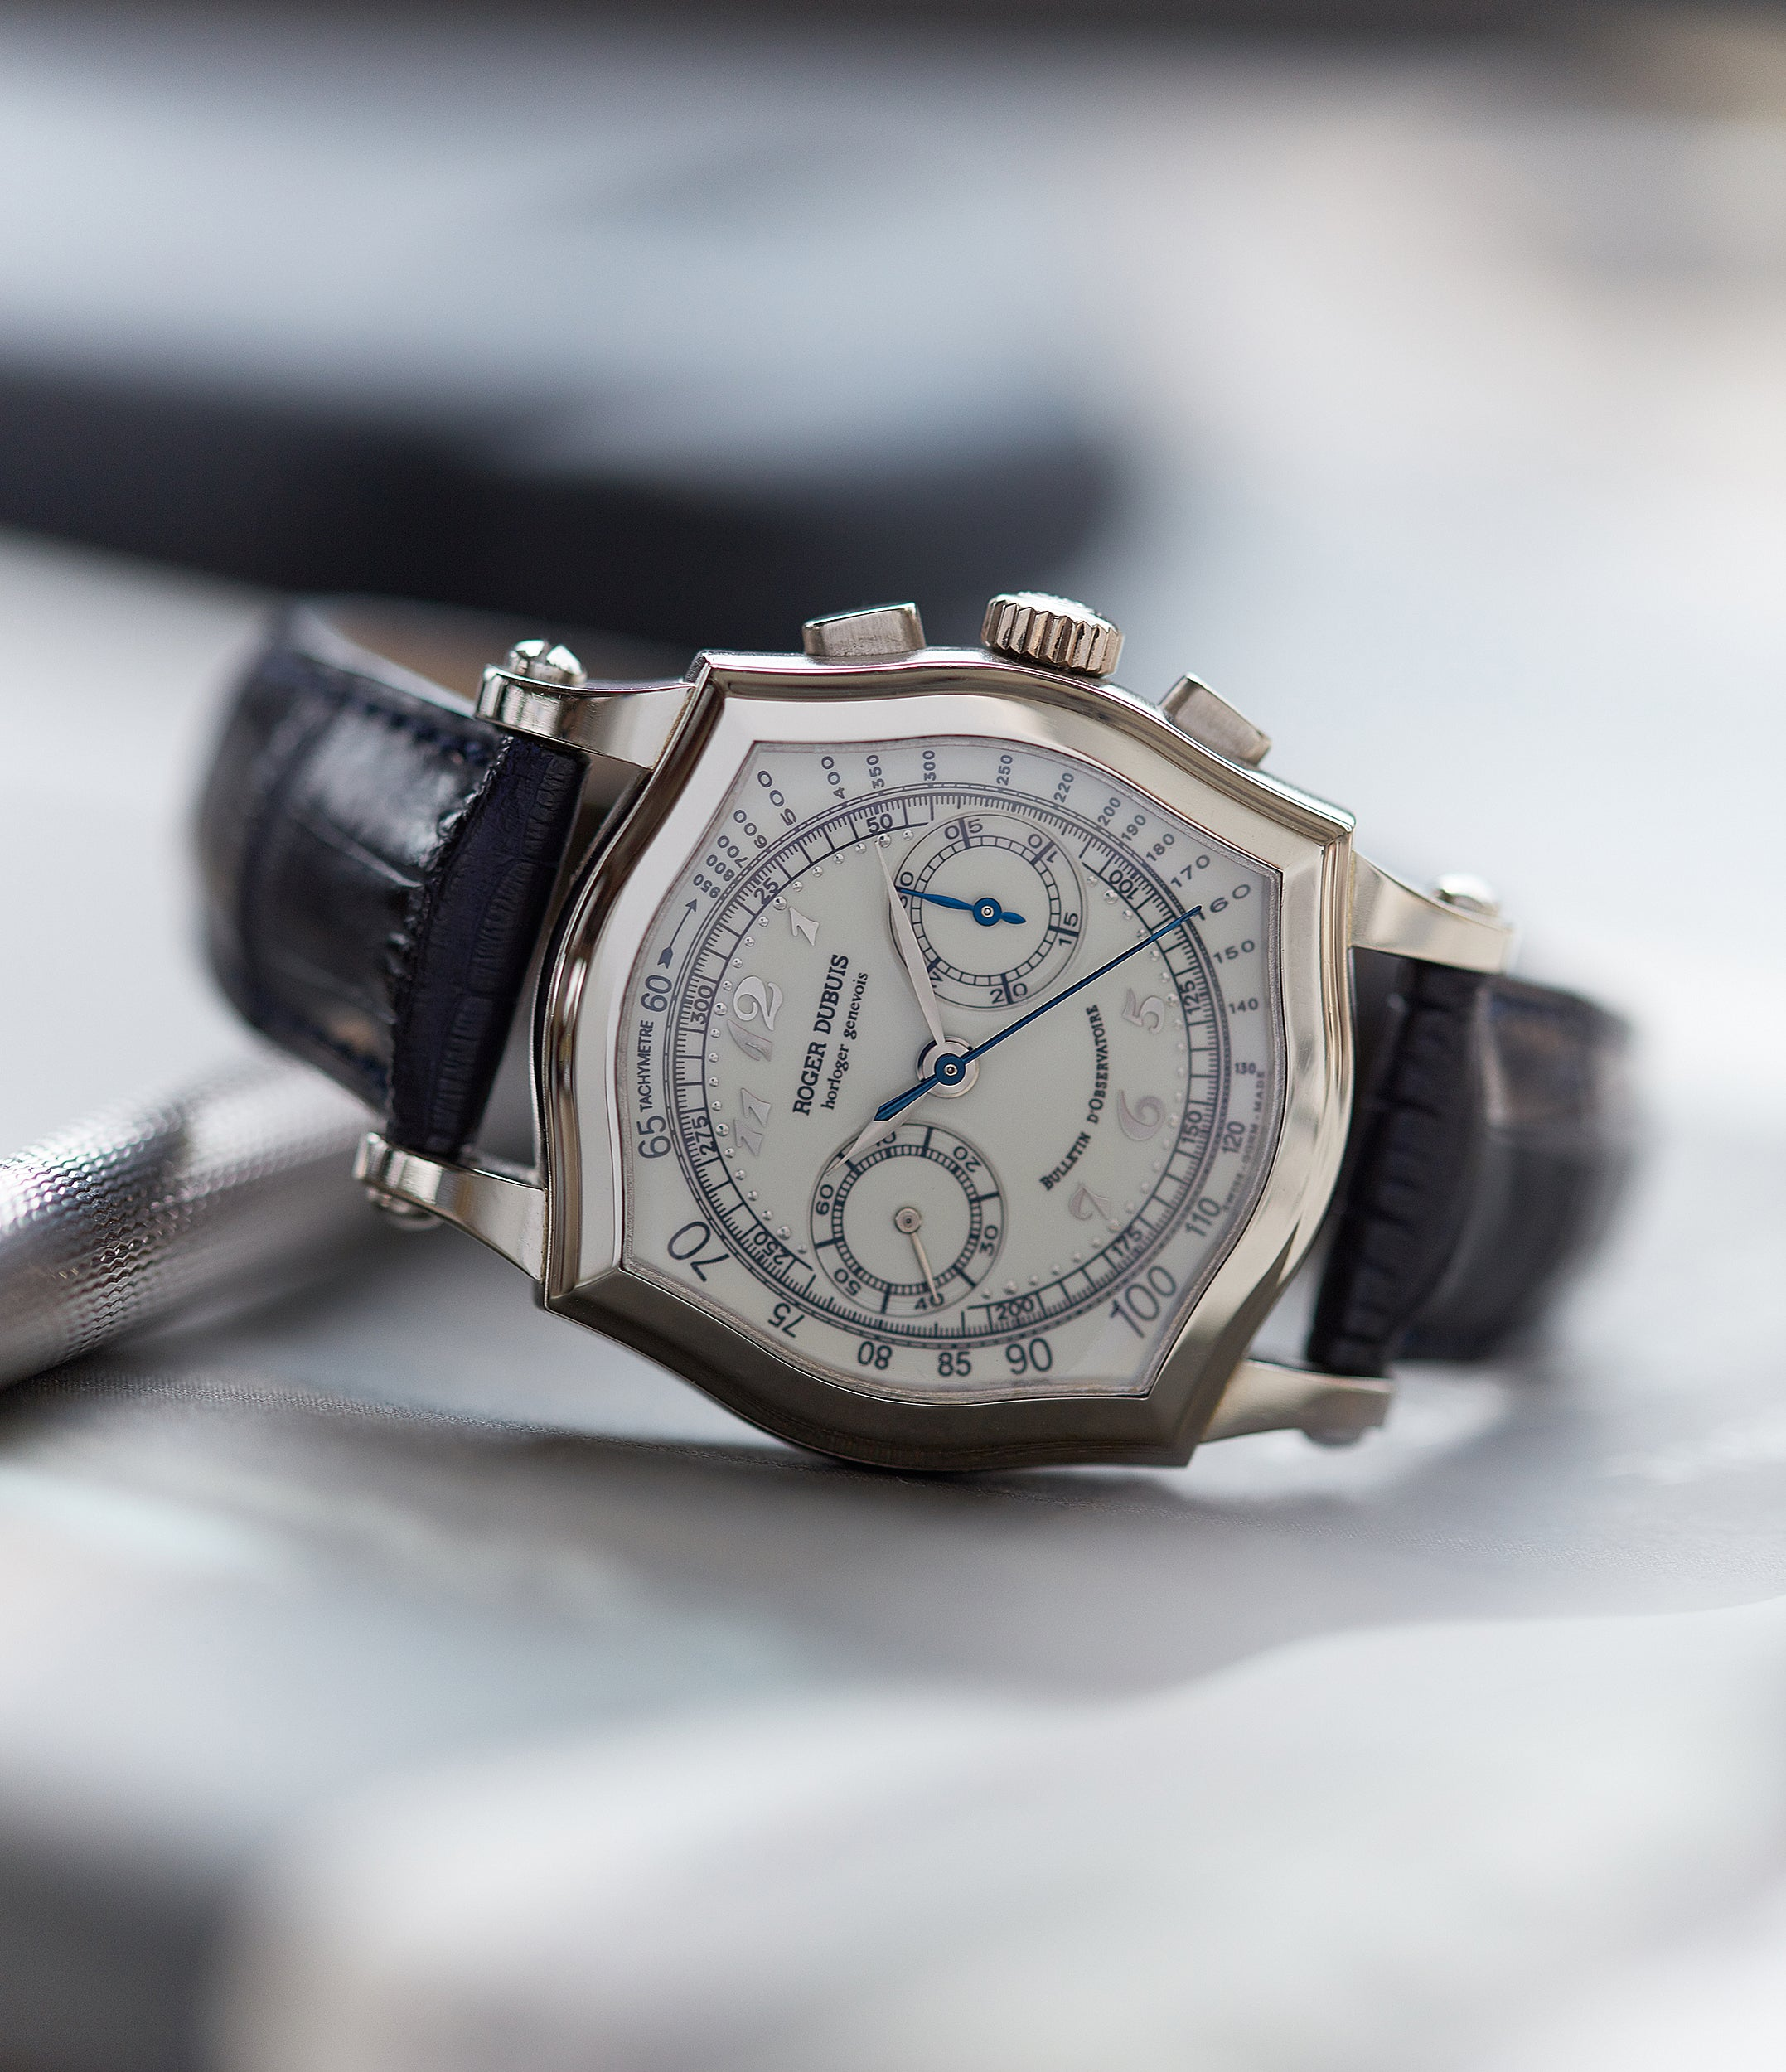 Roger Dubuis Sympathie Chronograph S37 Limited Edition white gold dress watch from independent watchmaker for sale online at A Collected Man London UK specialist of rare watches